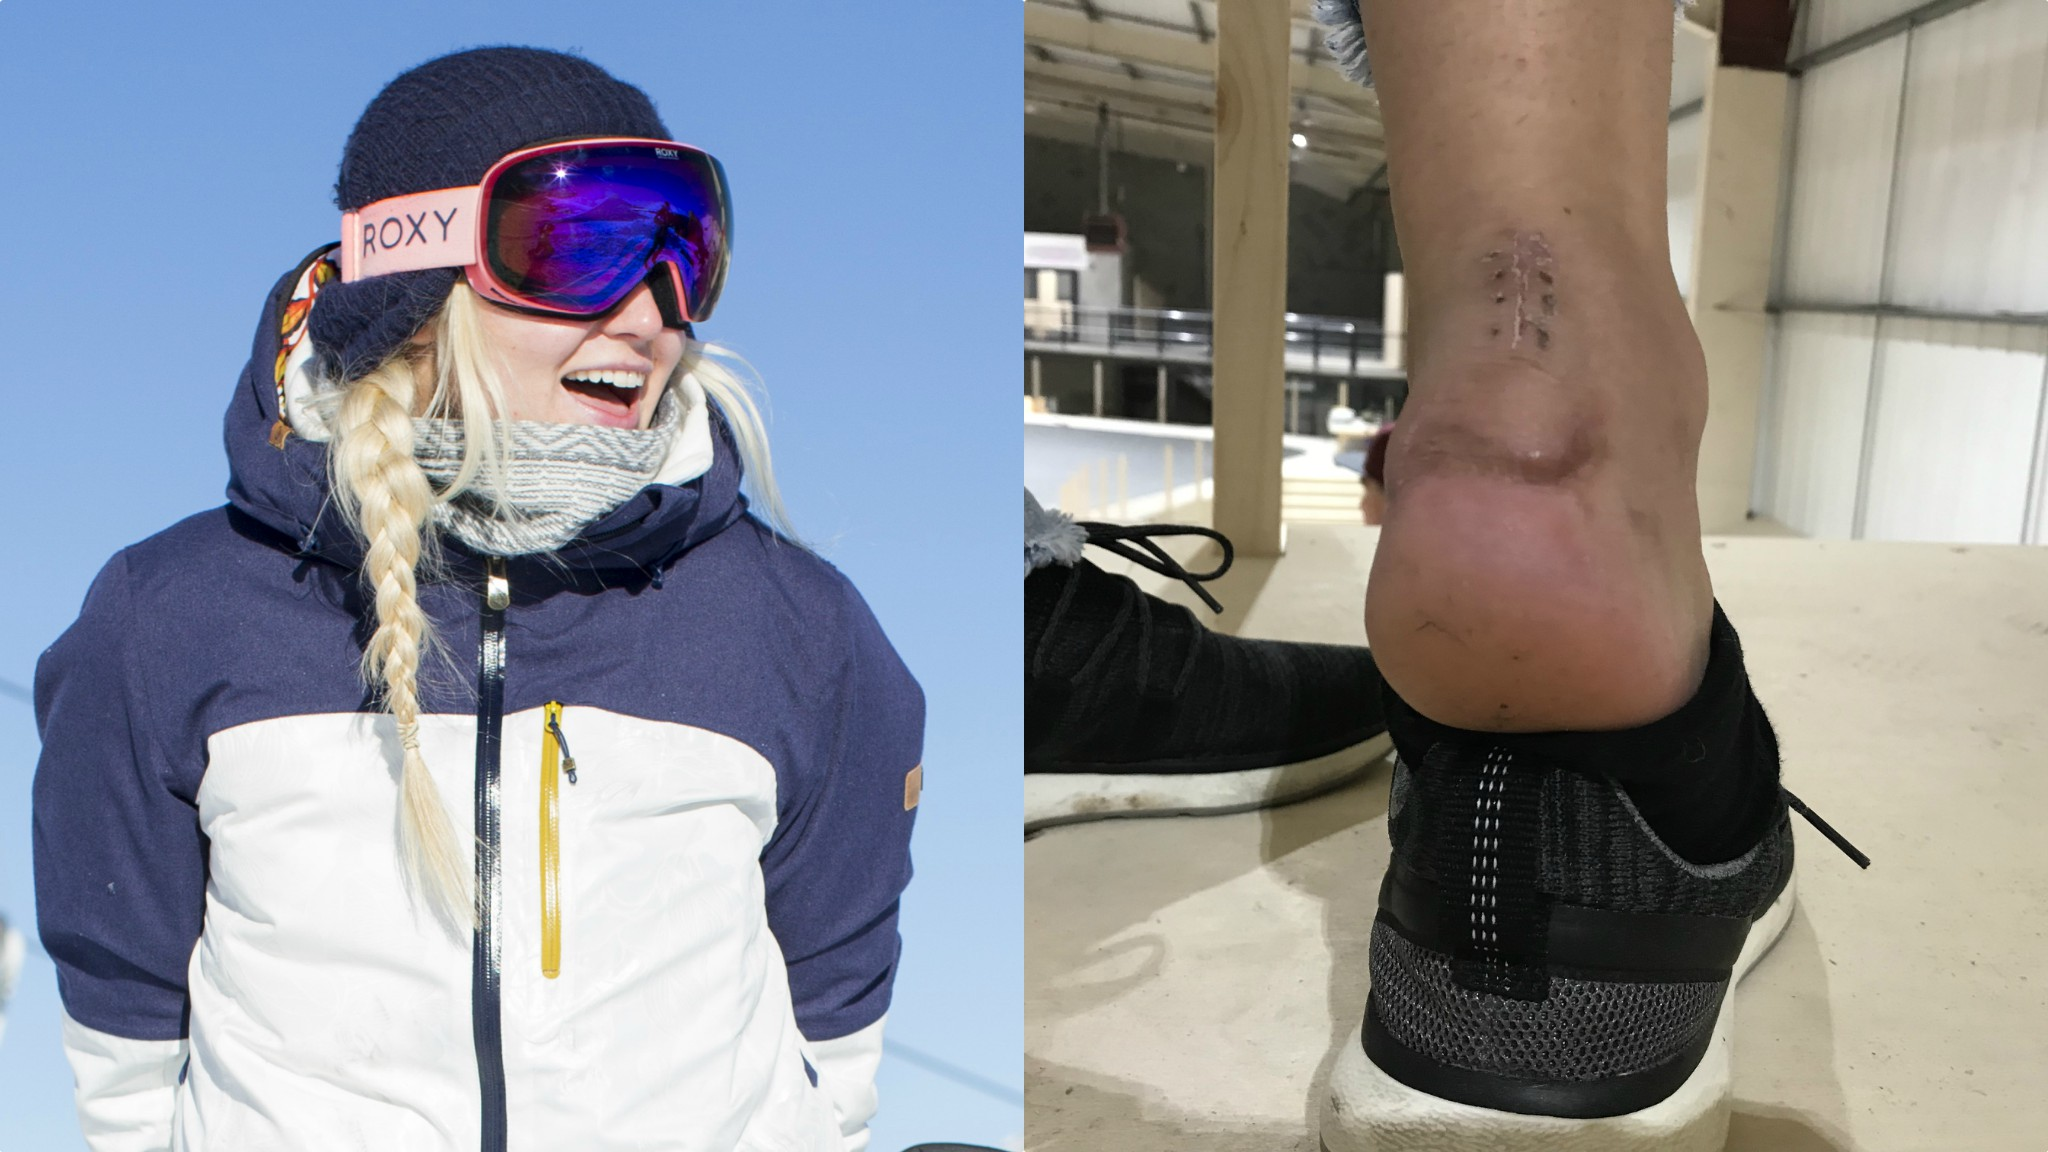 Katie Ormerod: Olympic snowboarder on how a broken heel led to 'dark days'